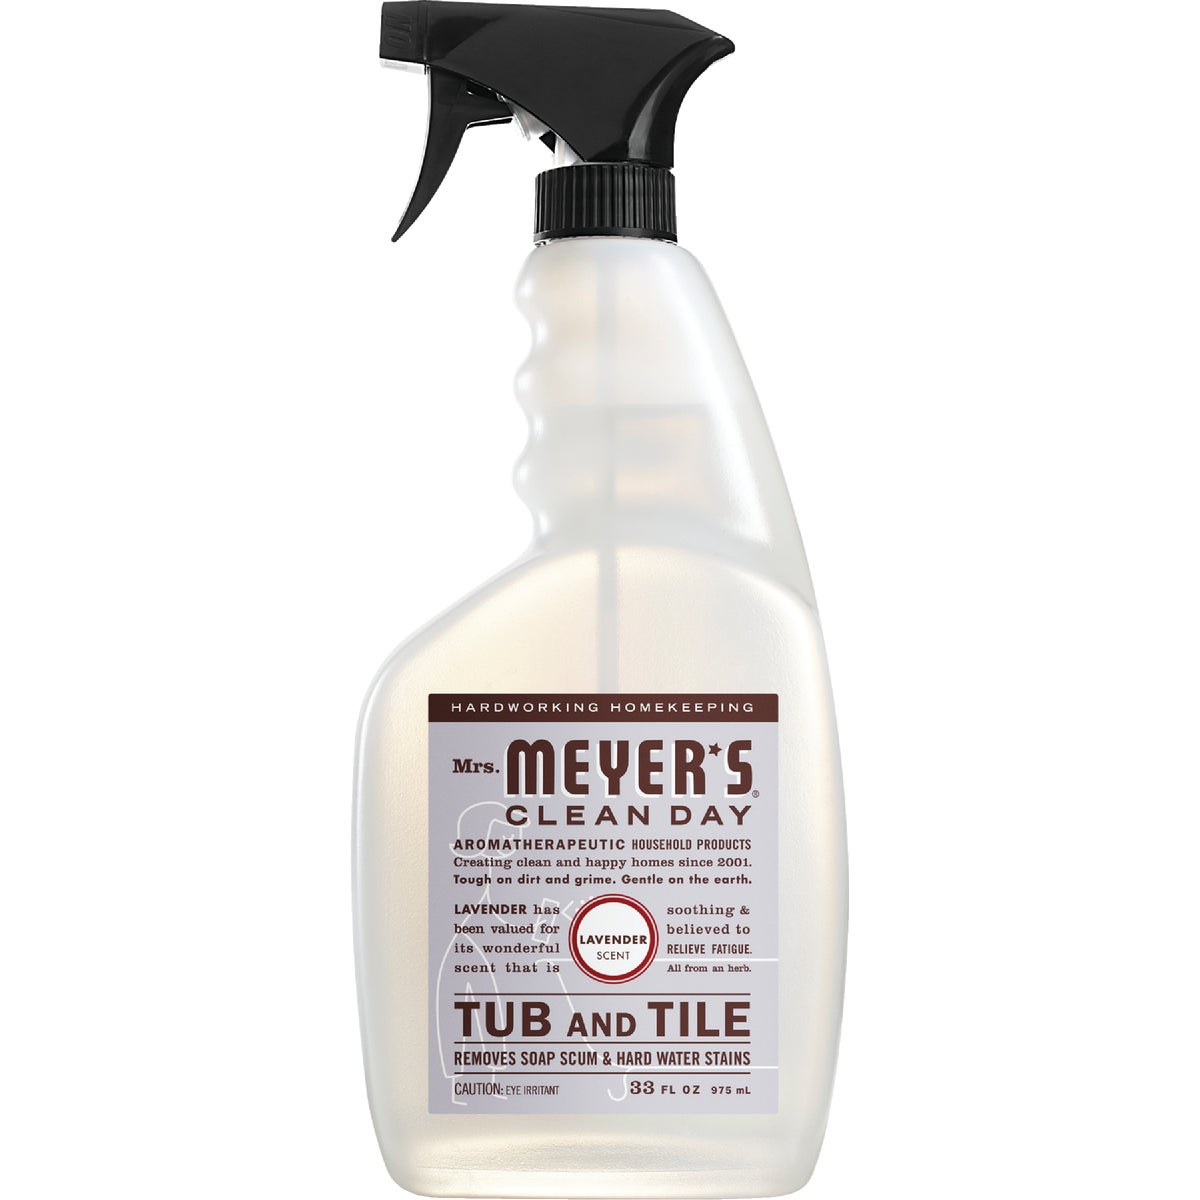 Mrs. Meyer's Clean Day Tub and Tile Bathroom Cleaner, 11168